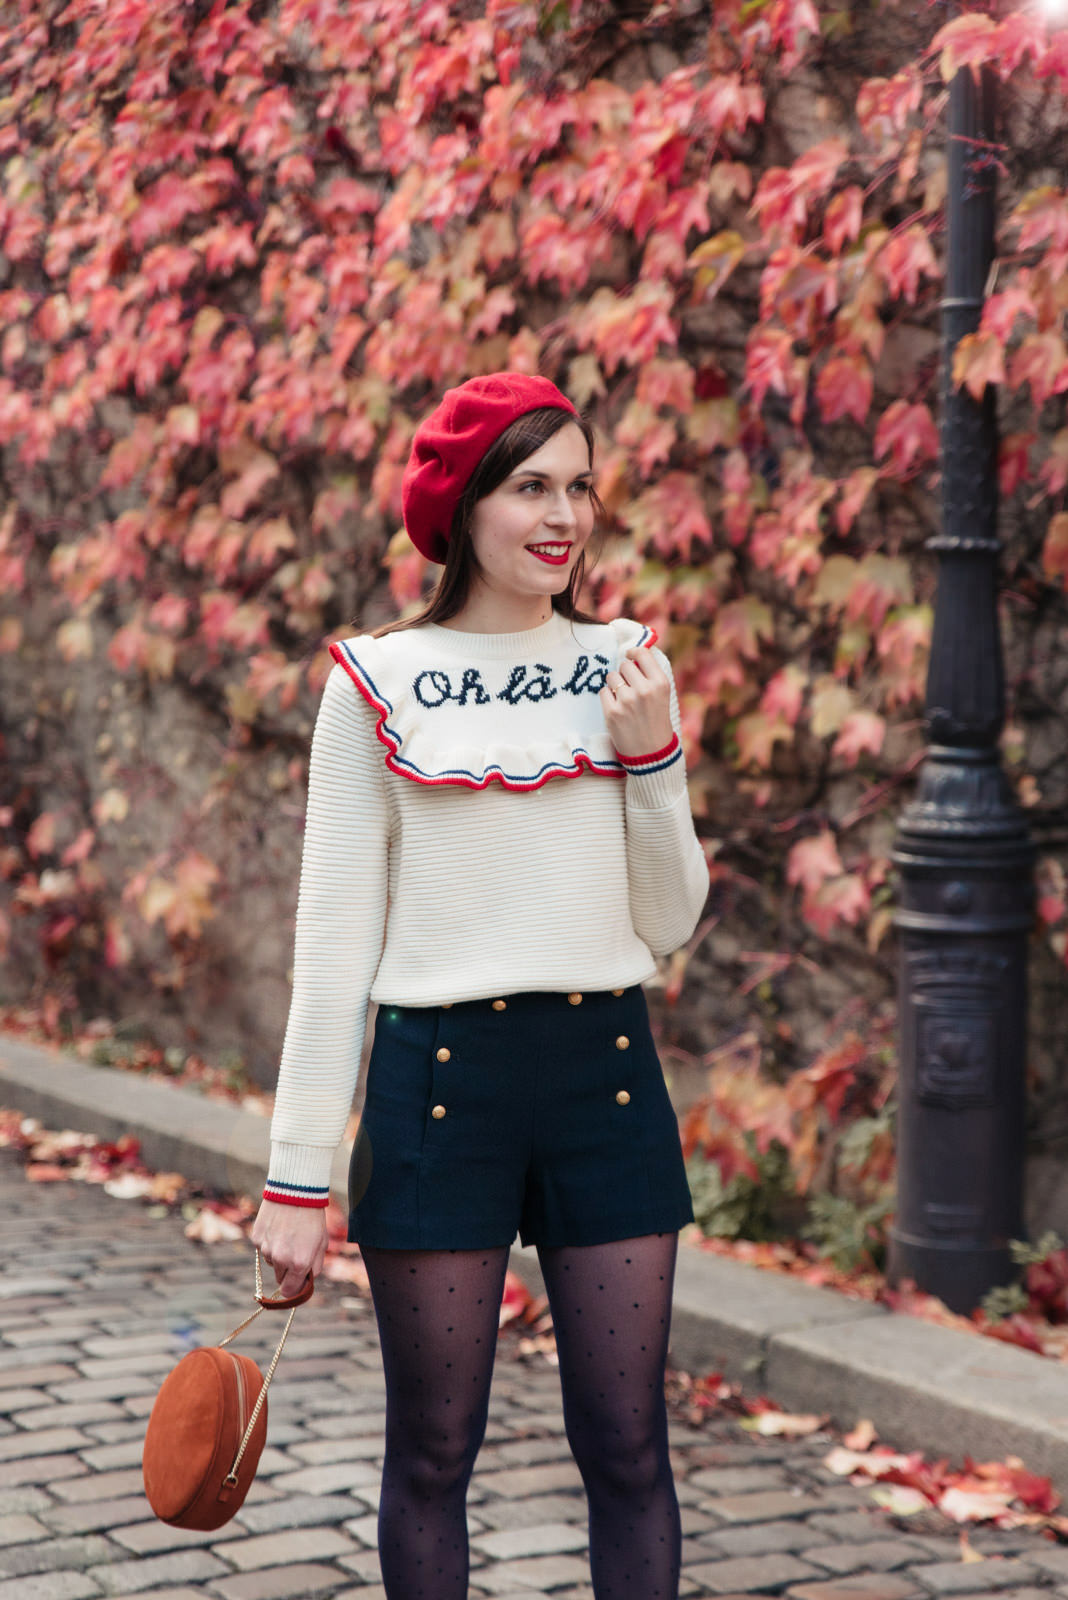 Blog-Mode-And-The-City-Looks-Ohlala-sweater-Lazzari-3